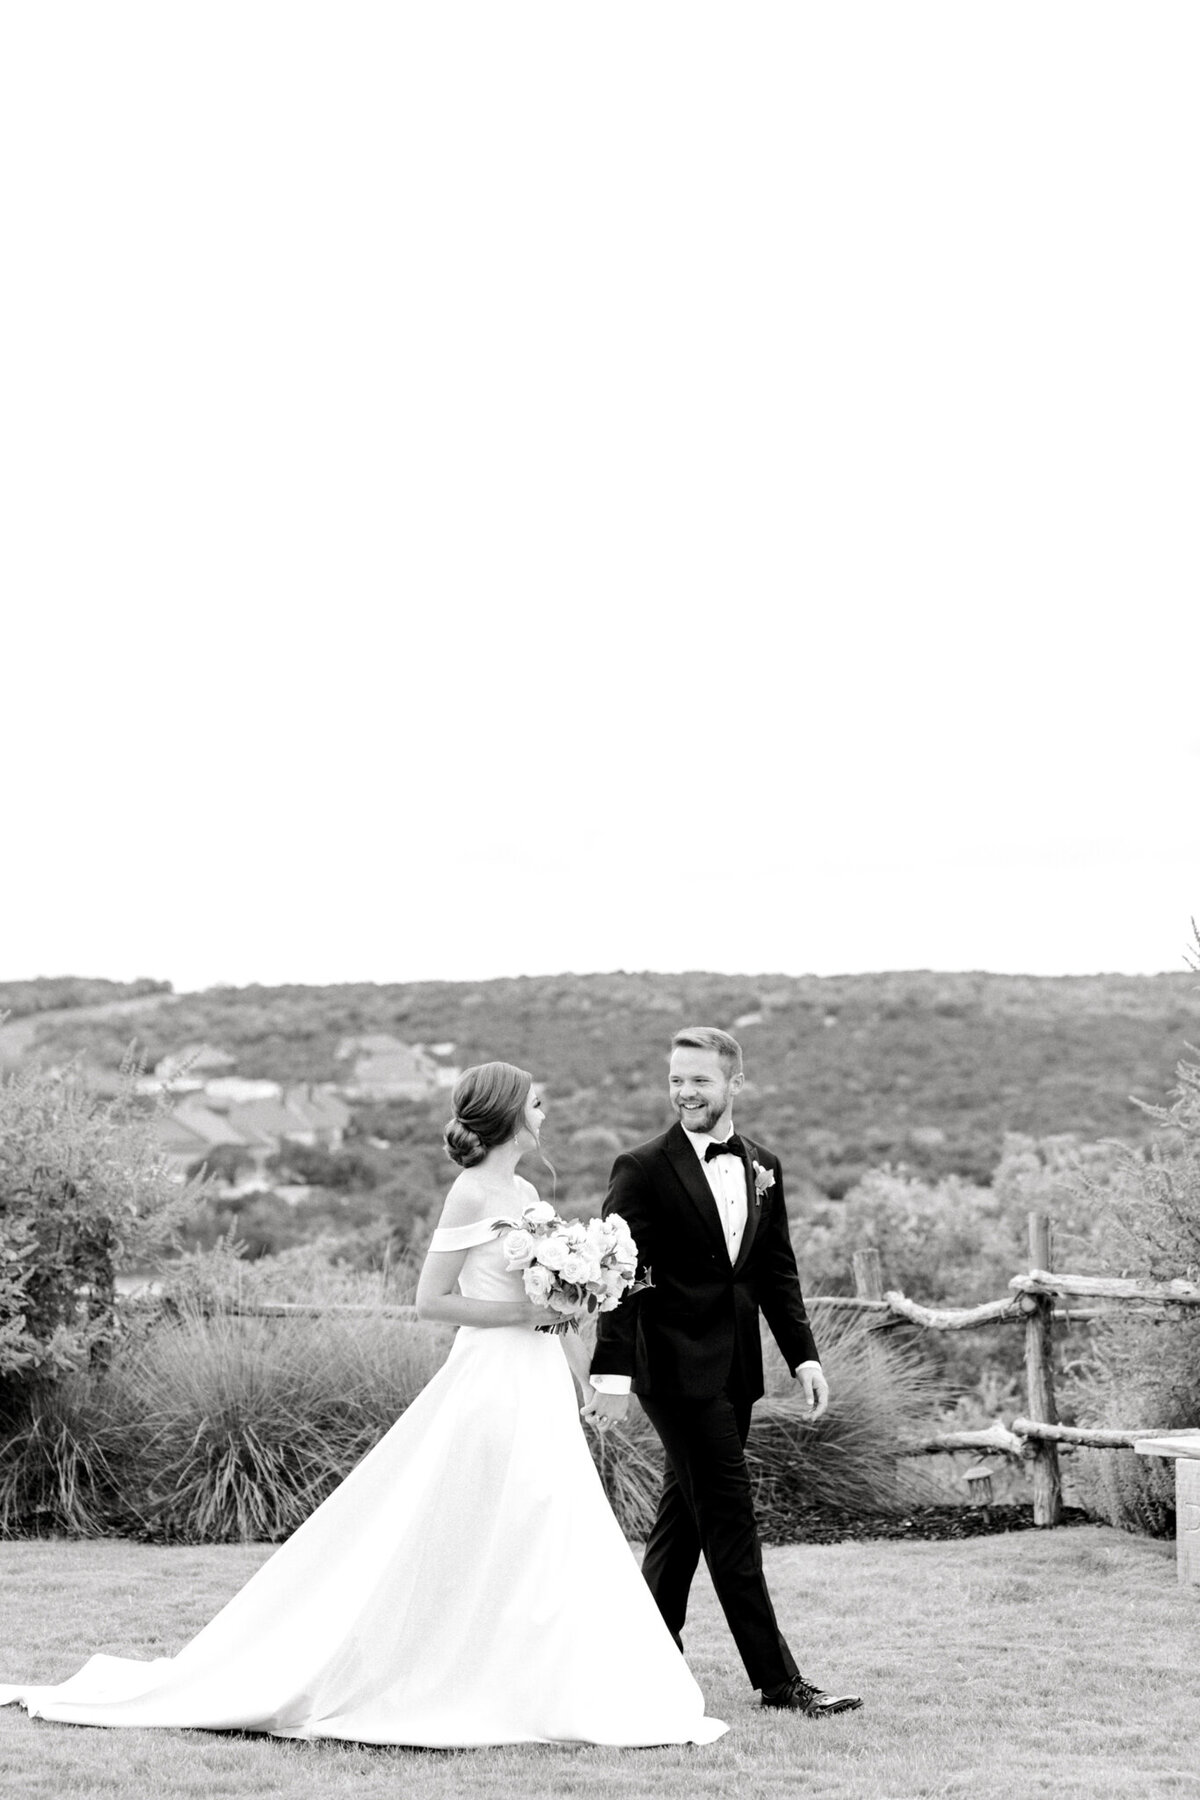 Lexi Broughton & Garrett Greer Wedding at Dove Ridge Vineyards | Sami Kathryn Photography | Dallas Wedding Photography-79